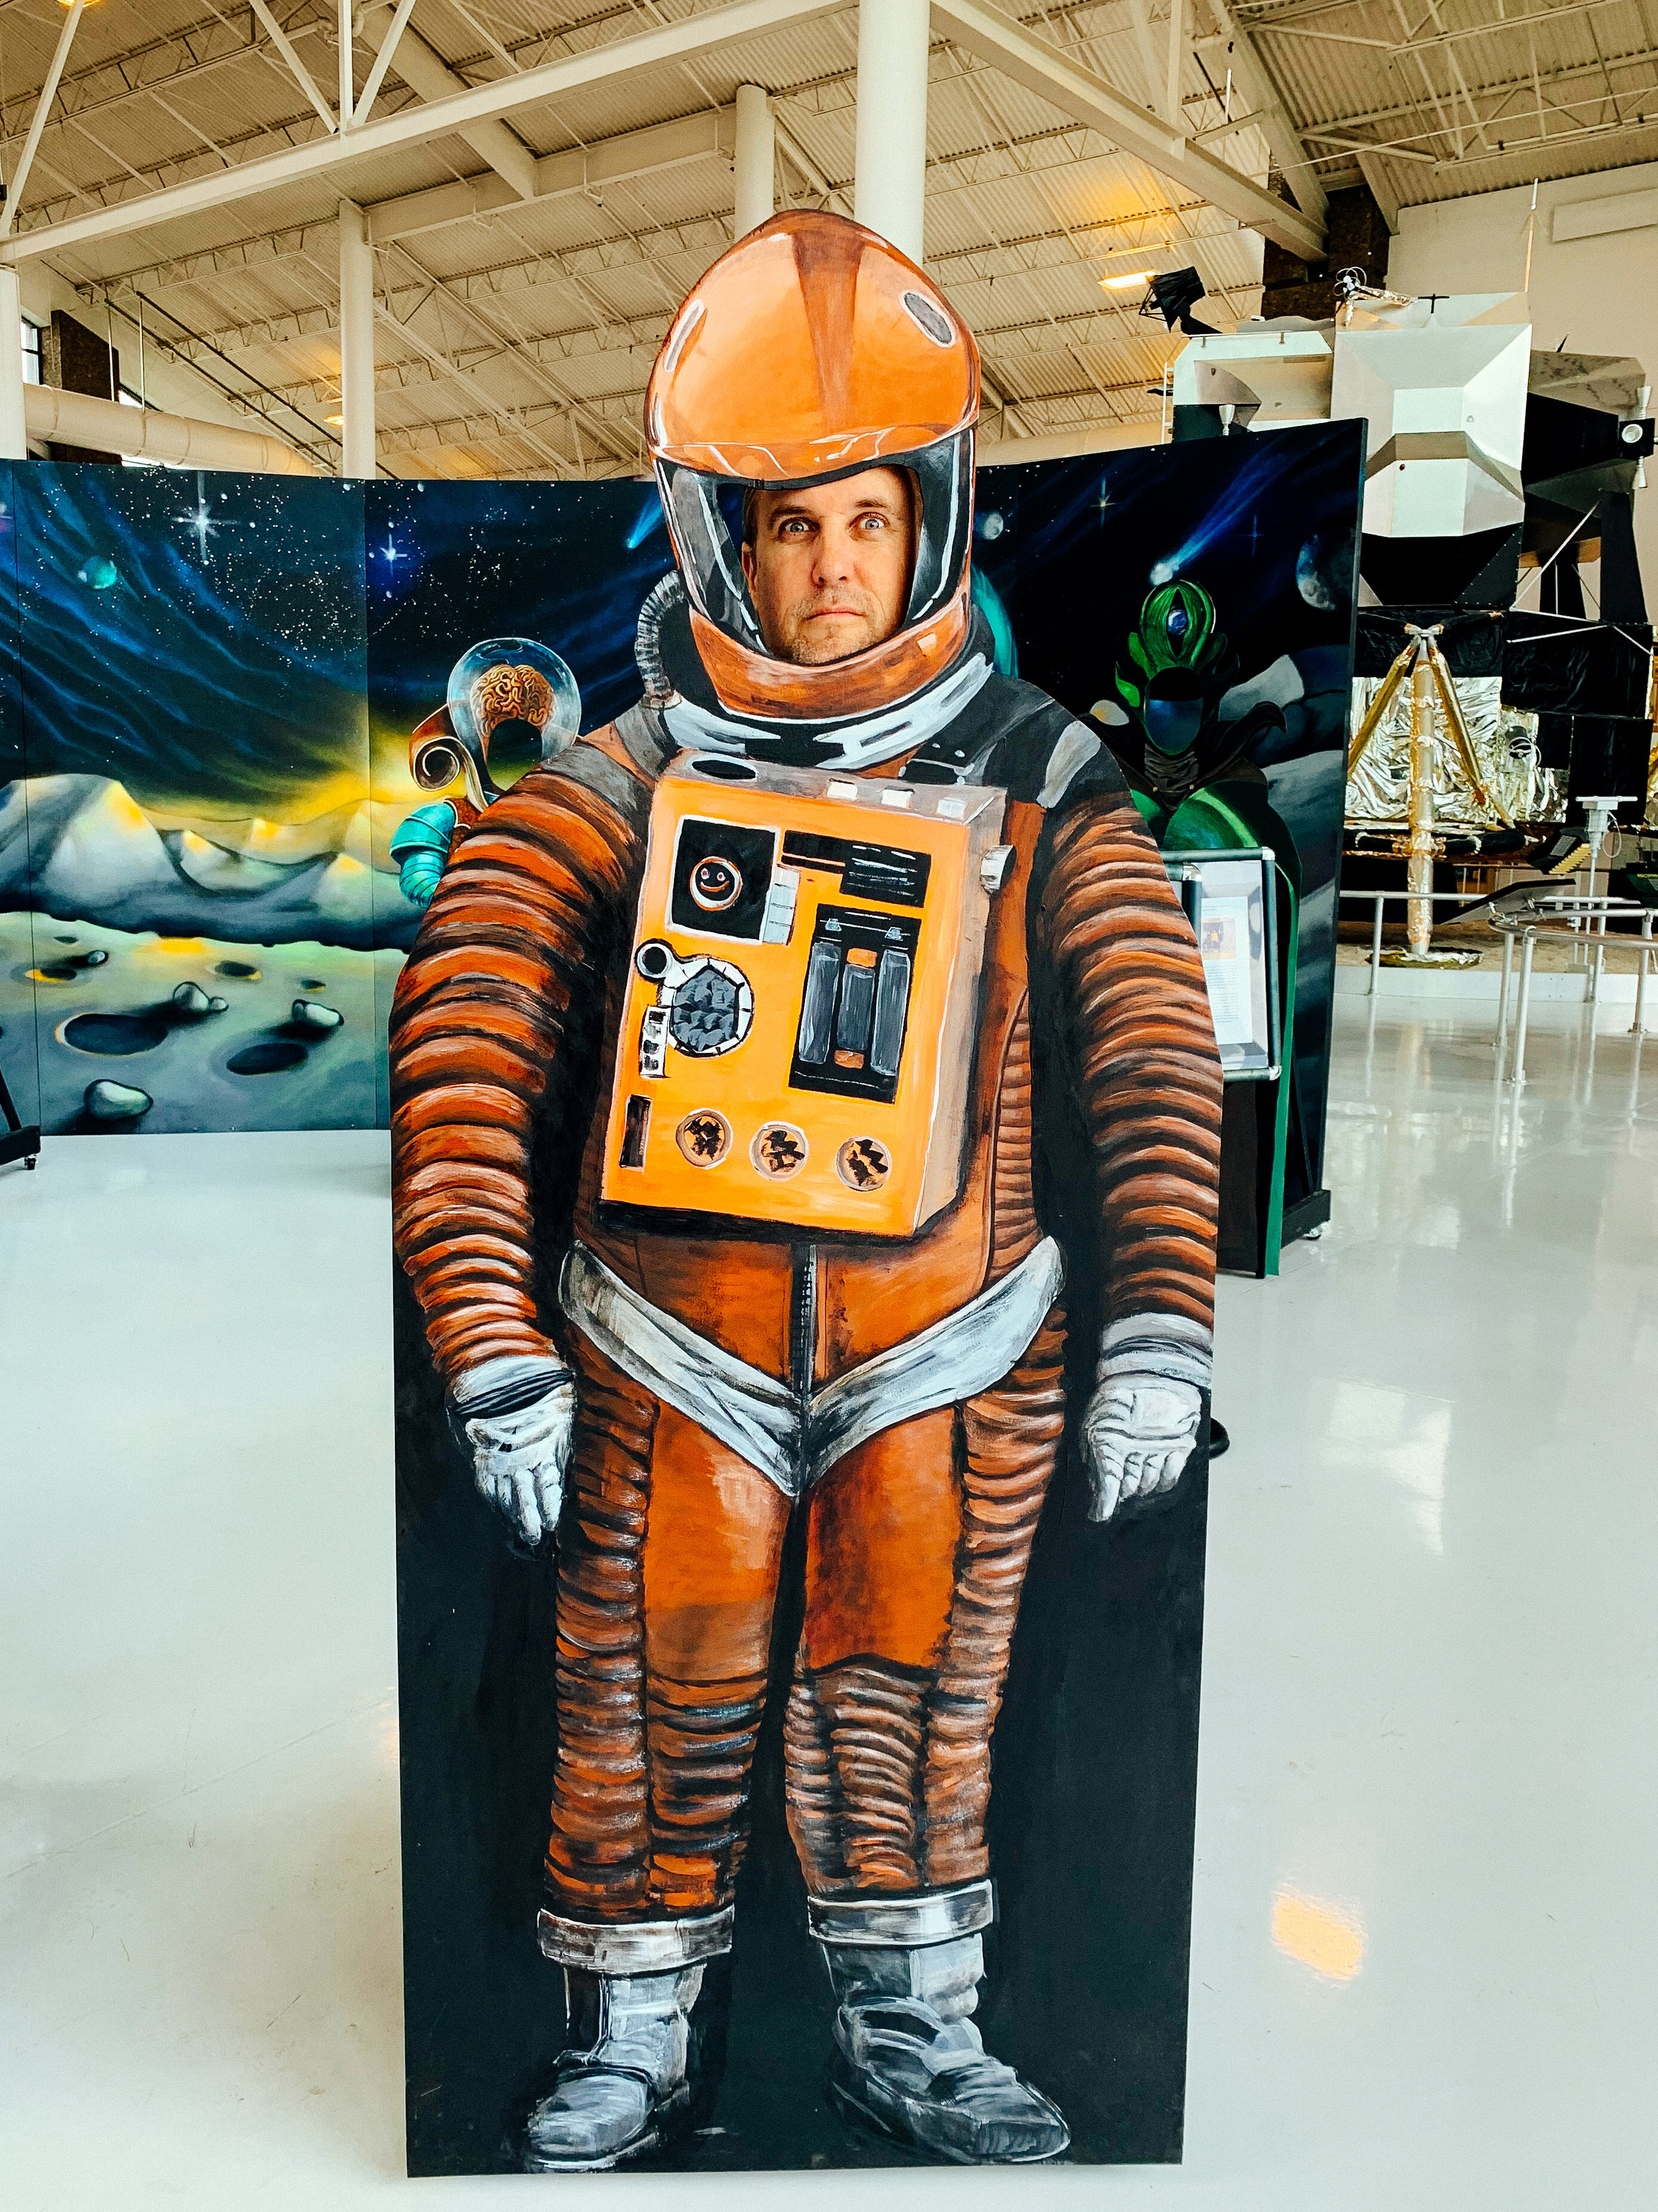 """""""Open the pod bay doors, Hal."""" -- Me in a 2001: A Space Odyssey cutout"""